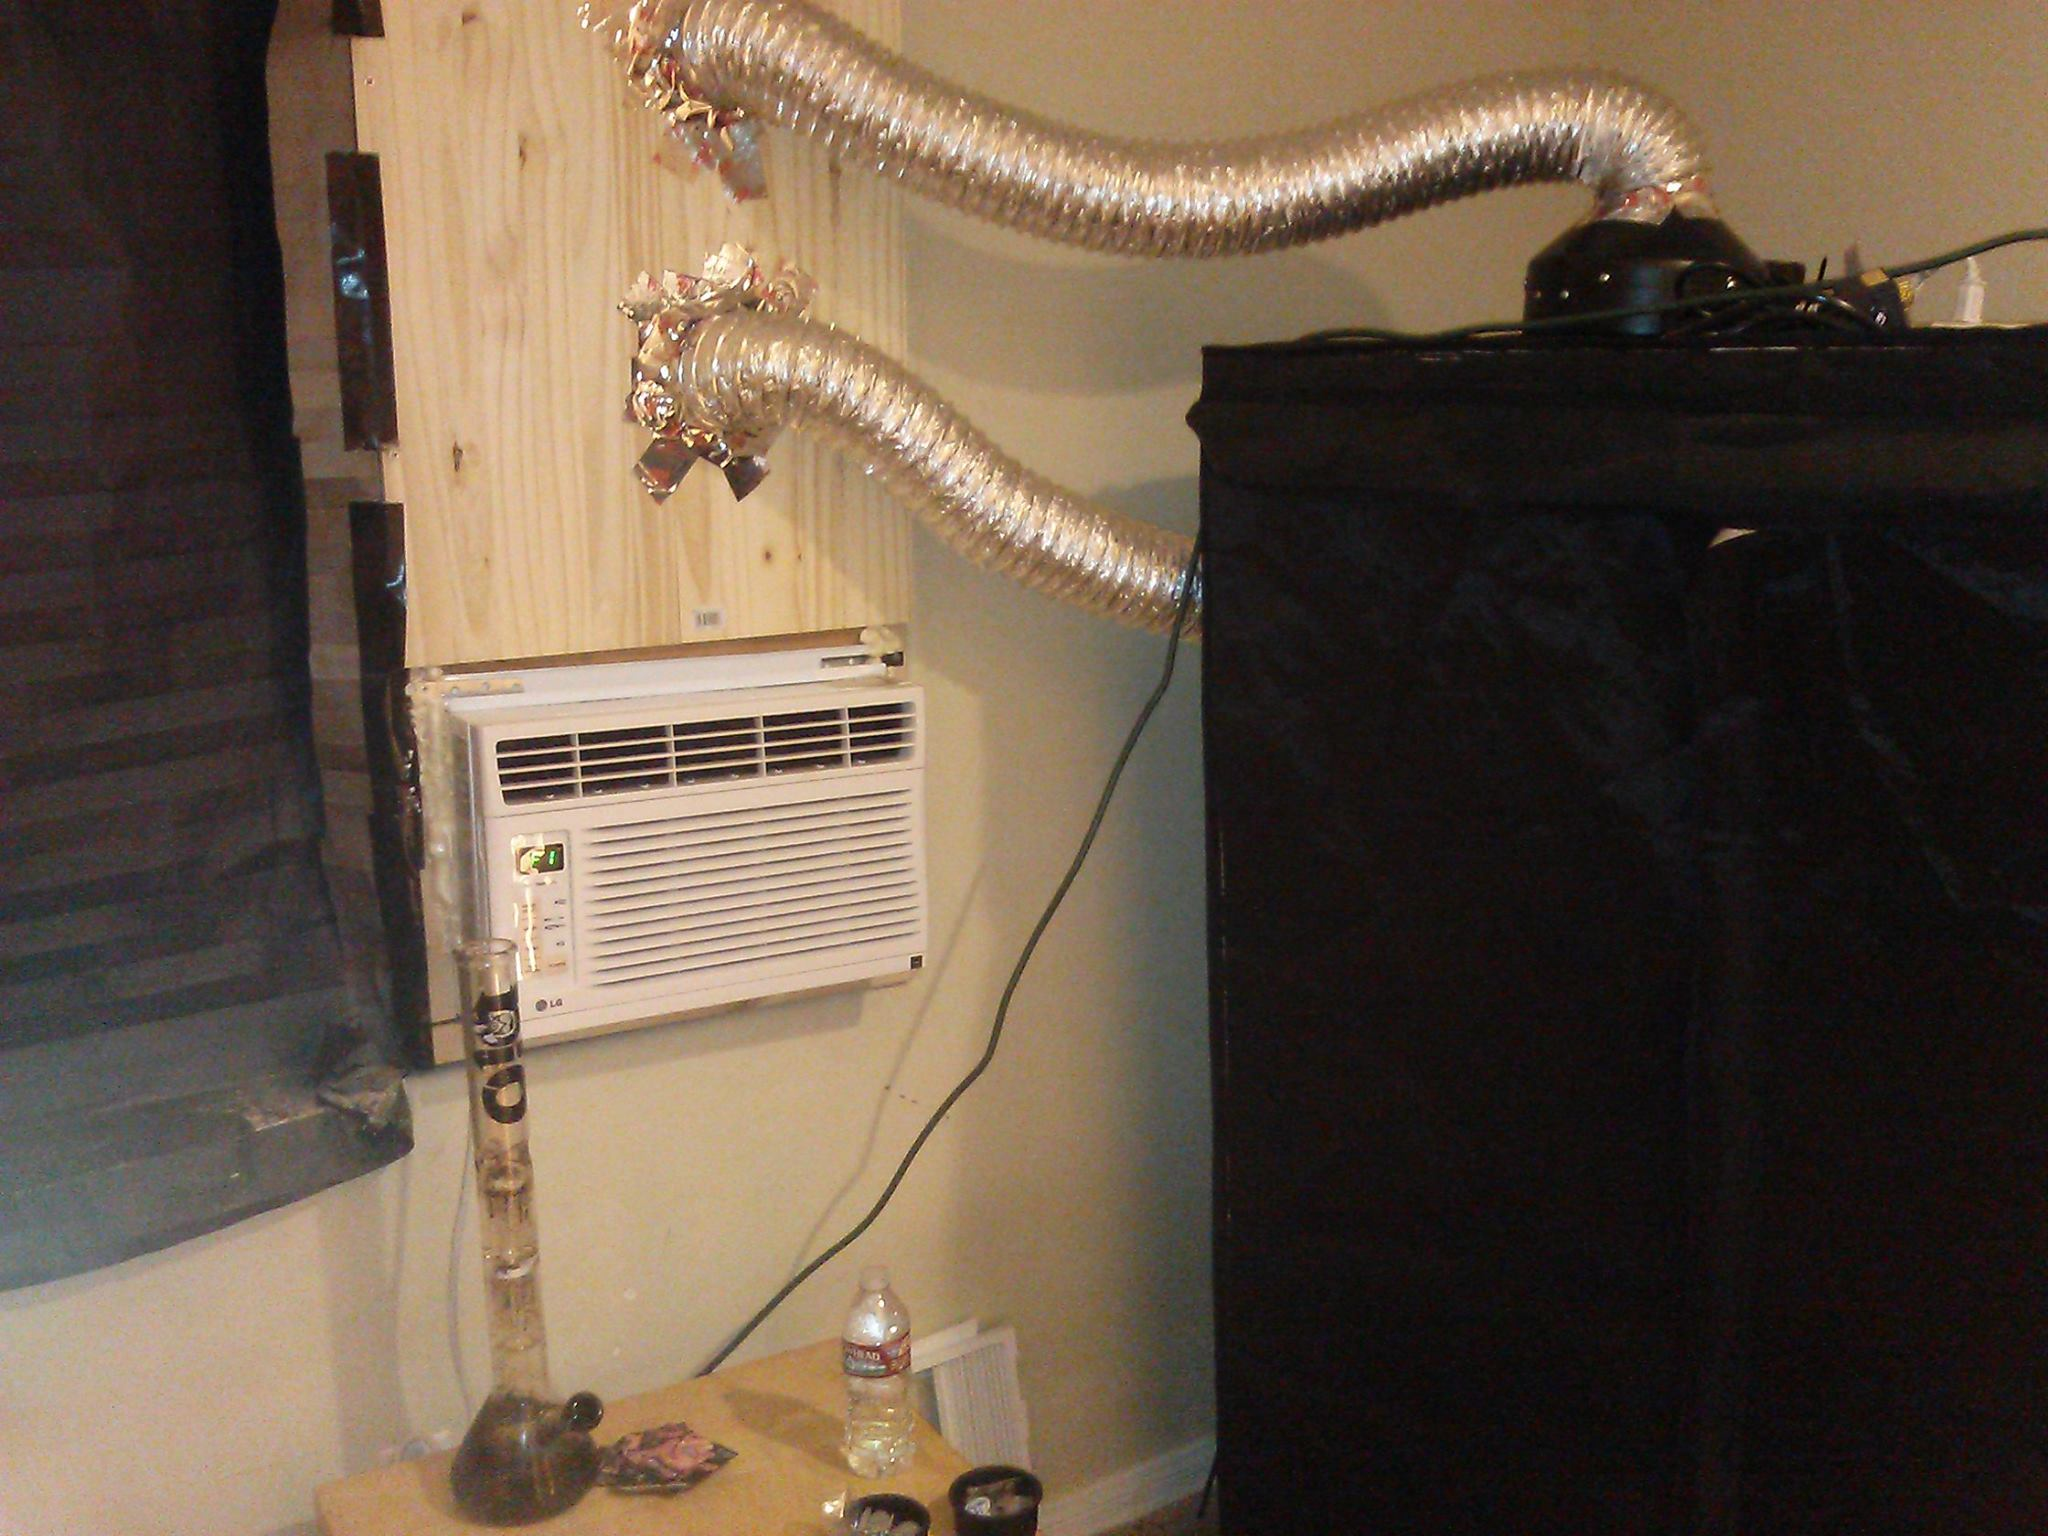 ... 400w hps in a 2x4ft tent my setup uses a closed loop to cool the light sealed off from the room which is vented with a 2nd ducting u0026 cooled with AC. & loco in my coco - 400w hps coco tent - Grow Journals - Growery ...